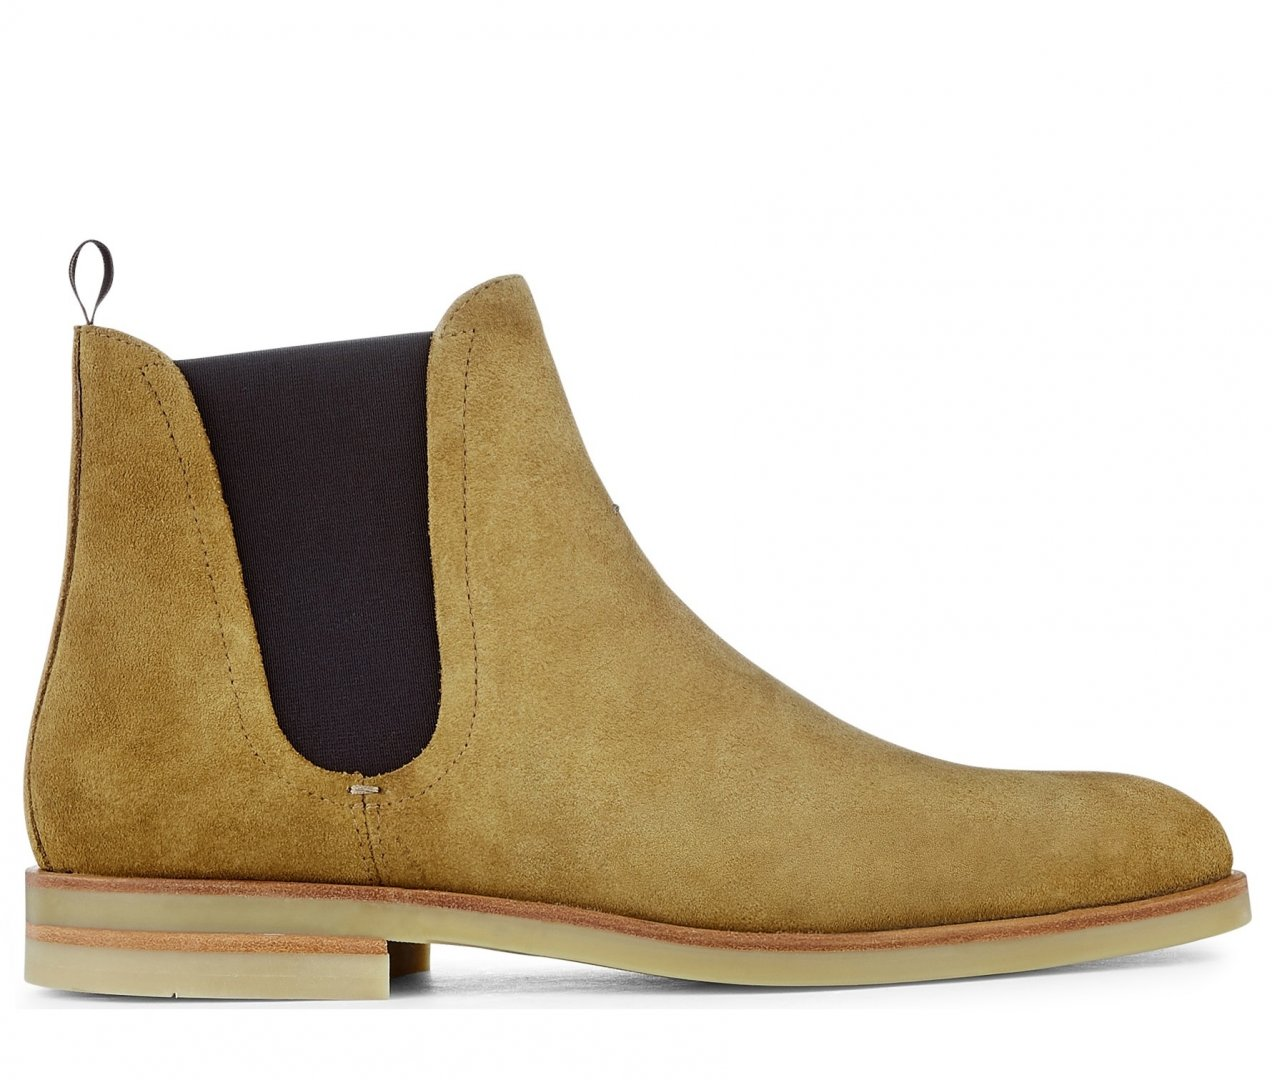 Adlington Suede Camel Chelsea Boot by